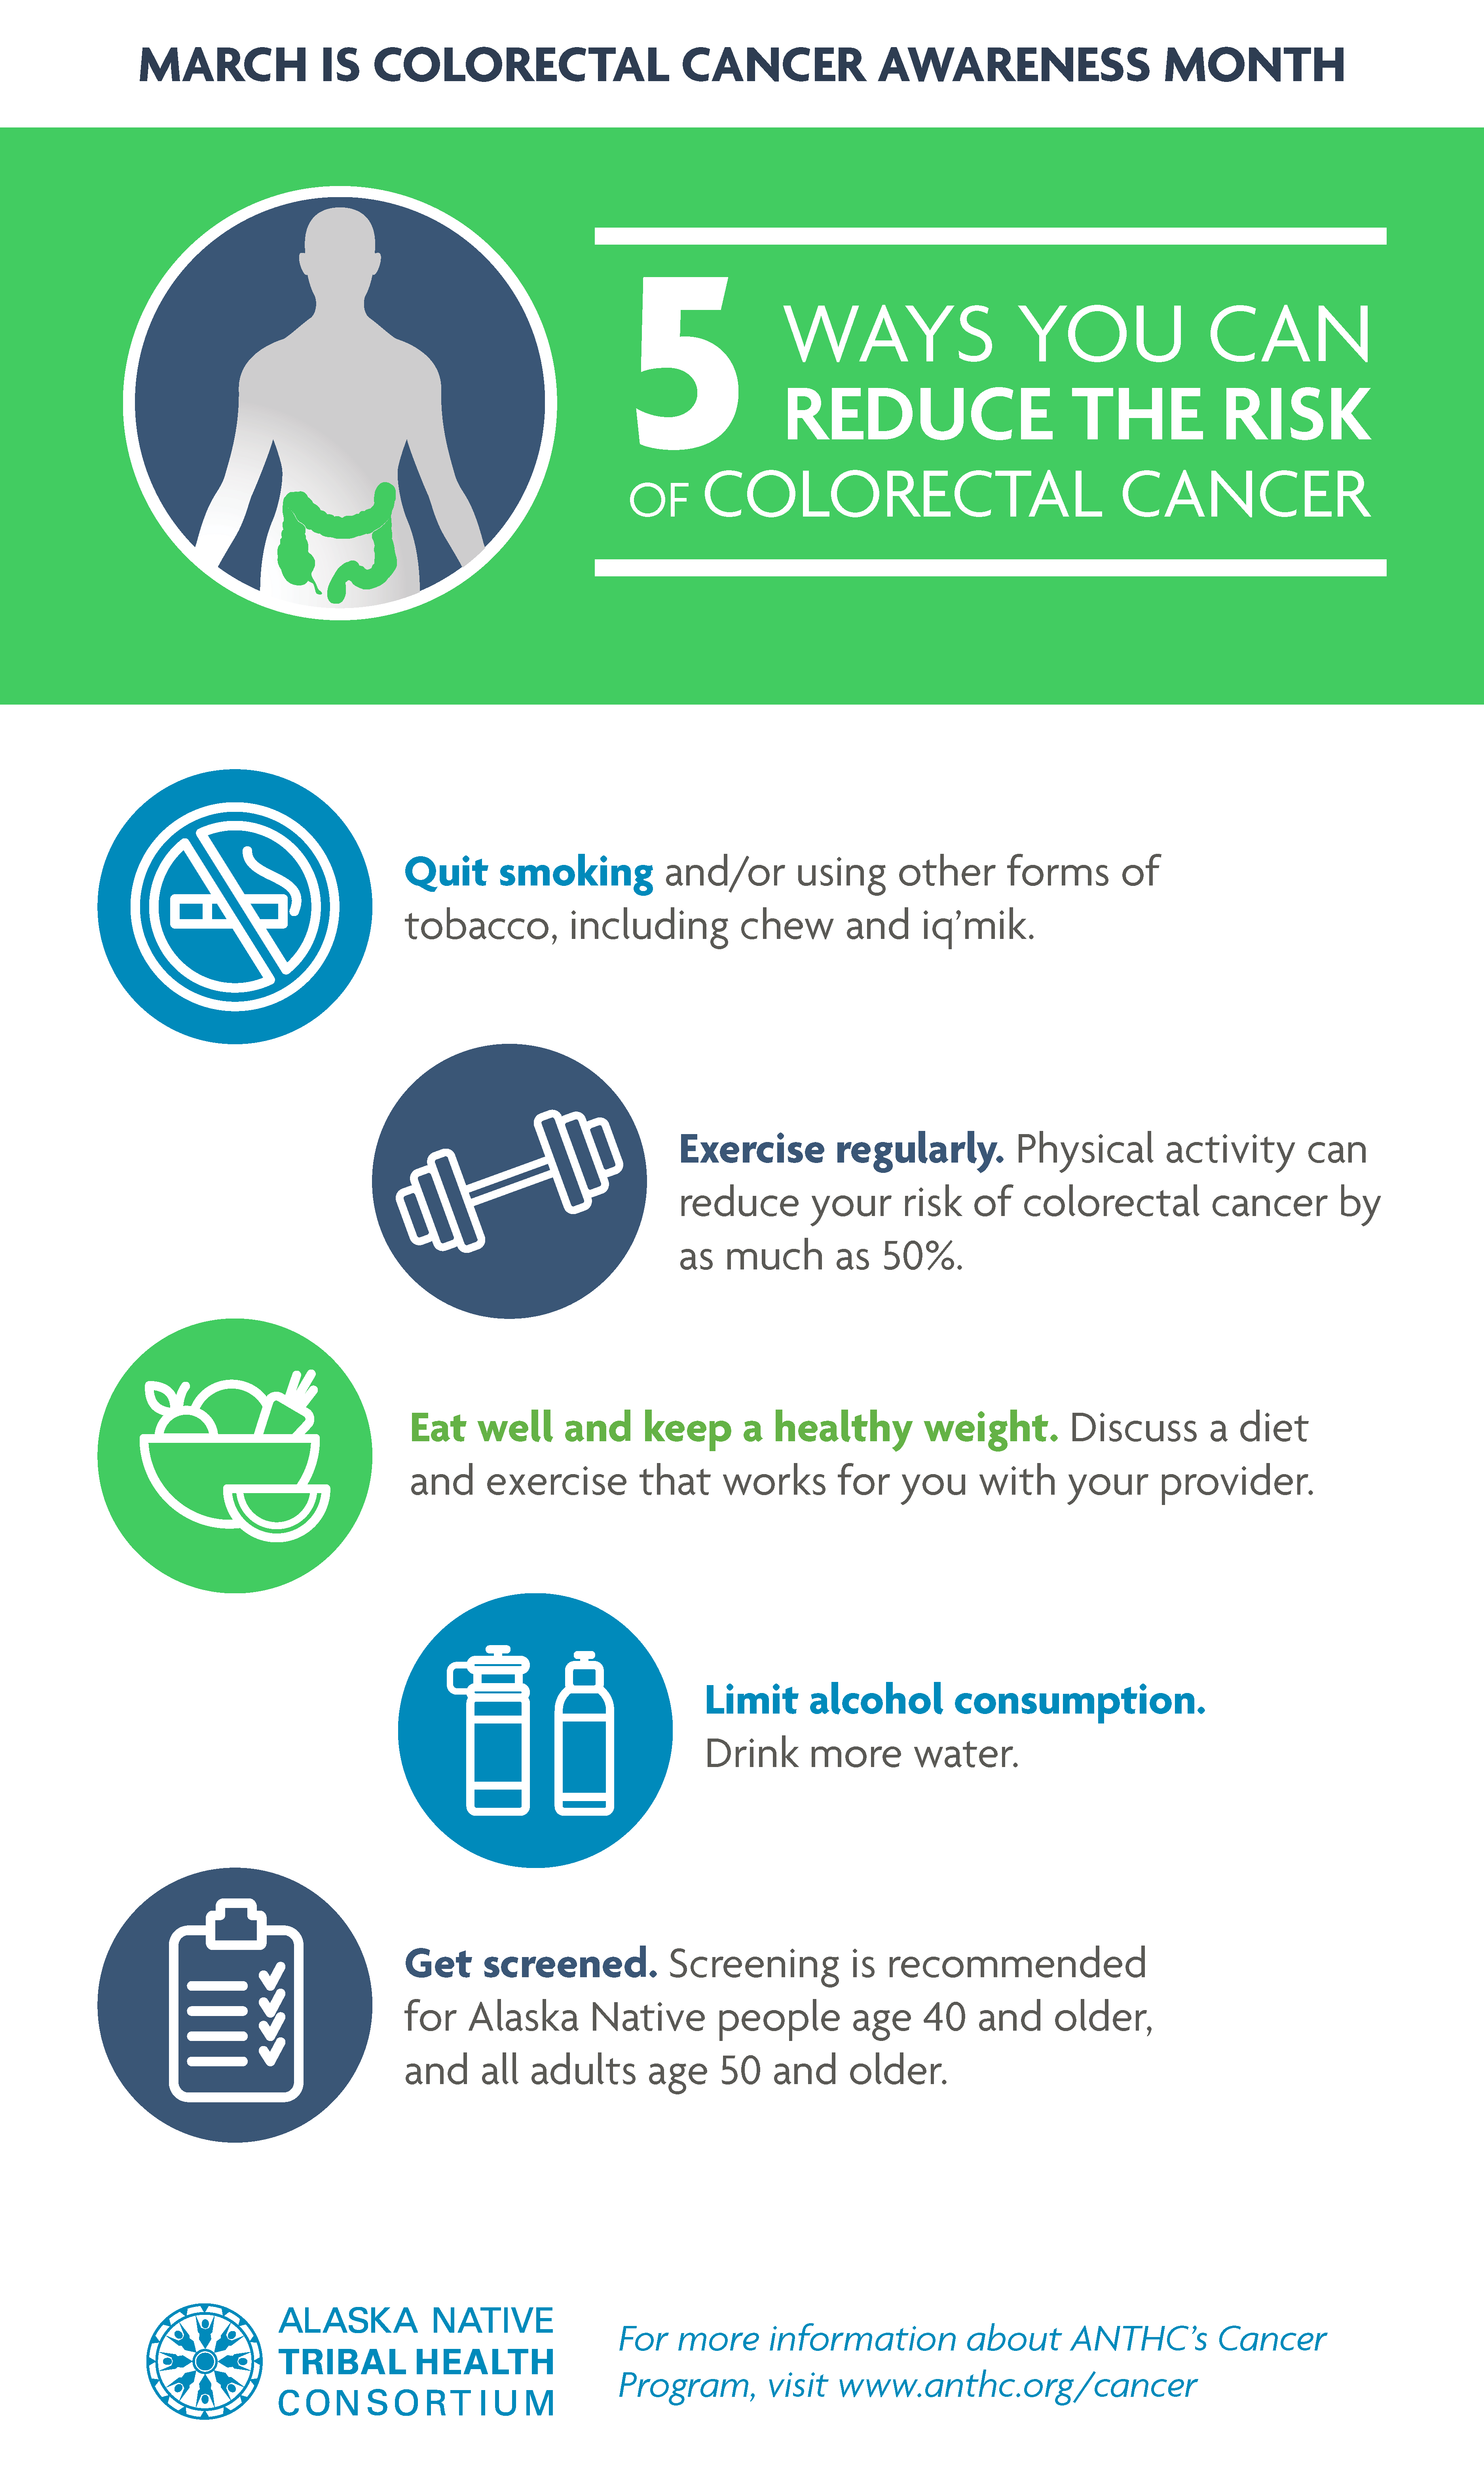 March Is Colorectal Cancer Awareness Month 5 Ways You Can Reduce The Risk Of Colorectal Cancer Alaska Native Tribal Health Consortium